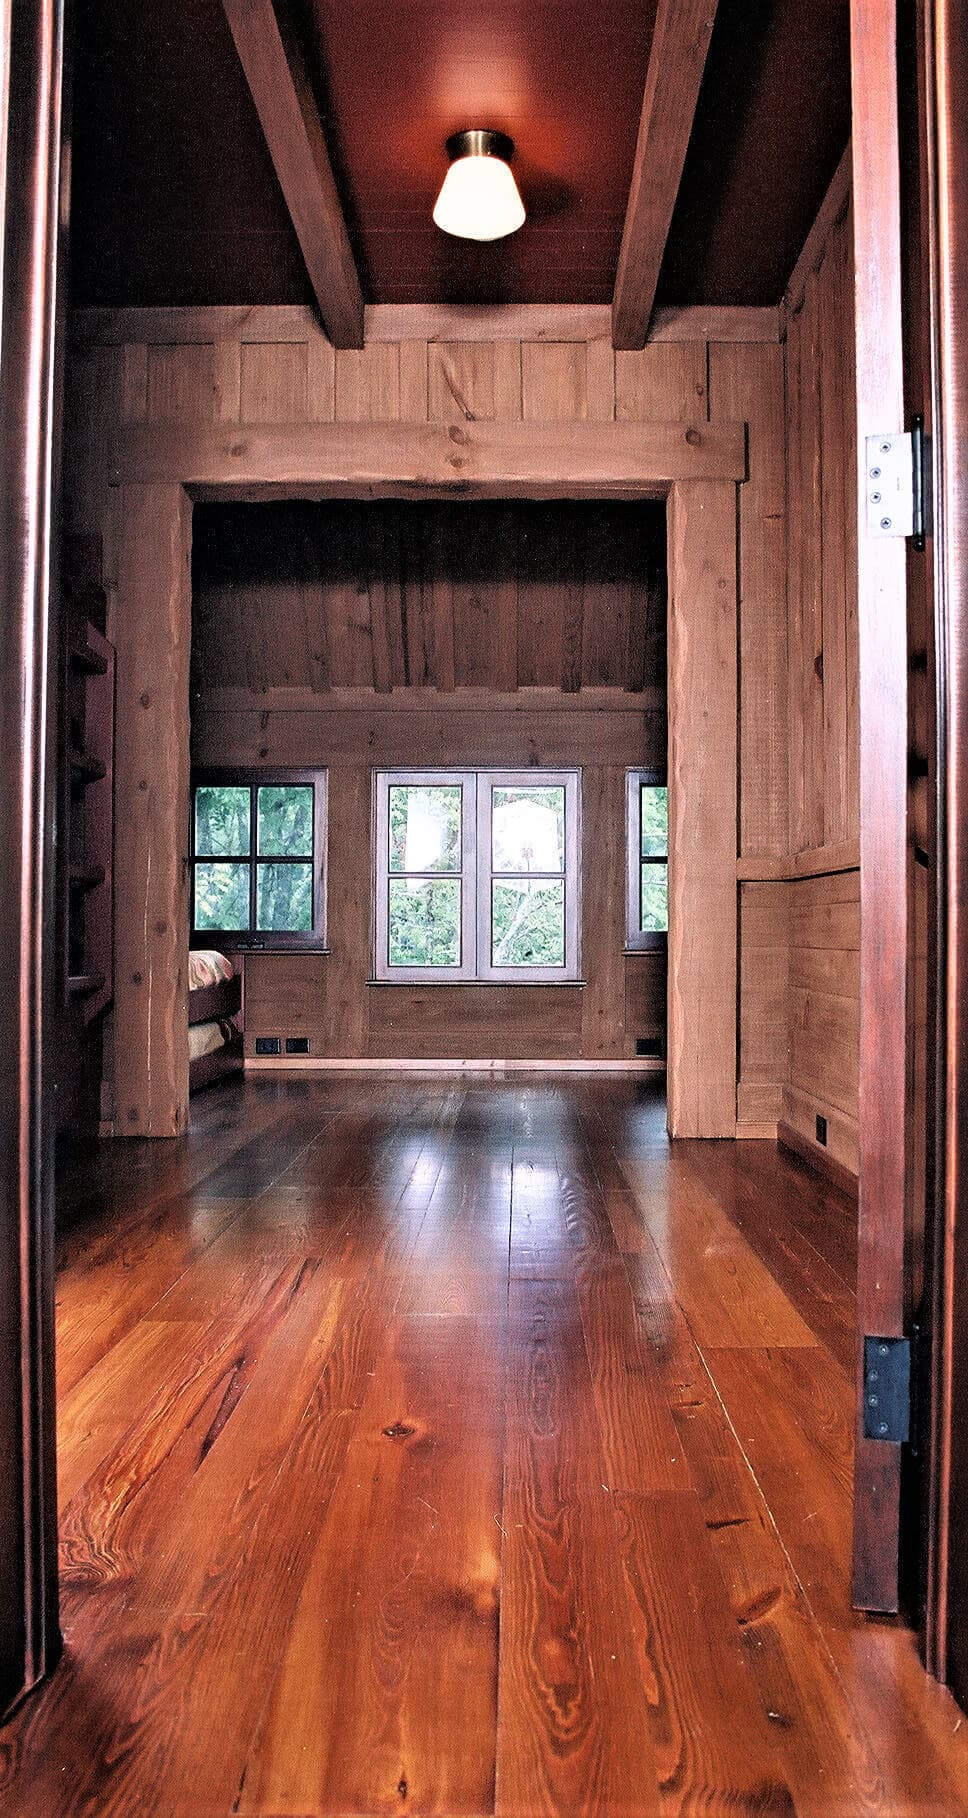 Antique heart pine flooring window view in Lake Toxaway NC